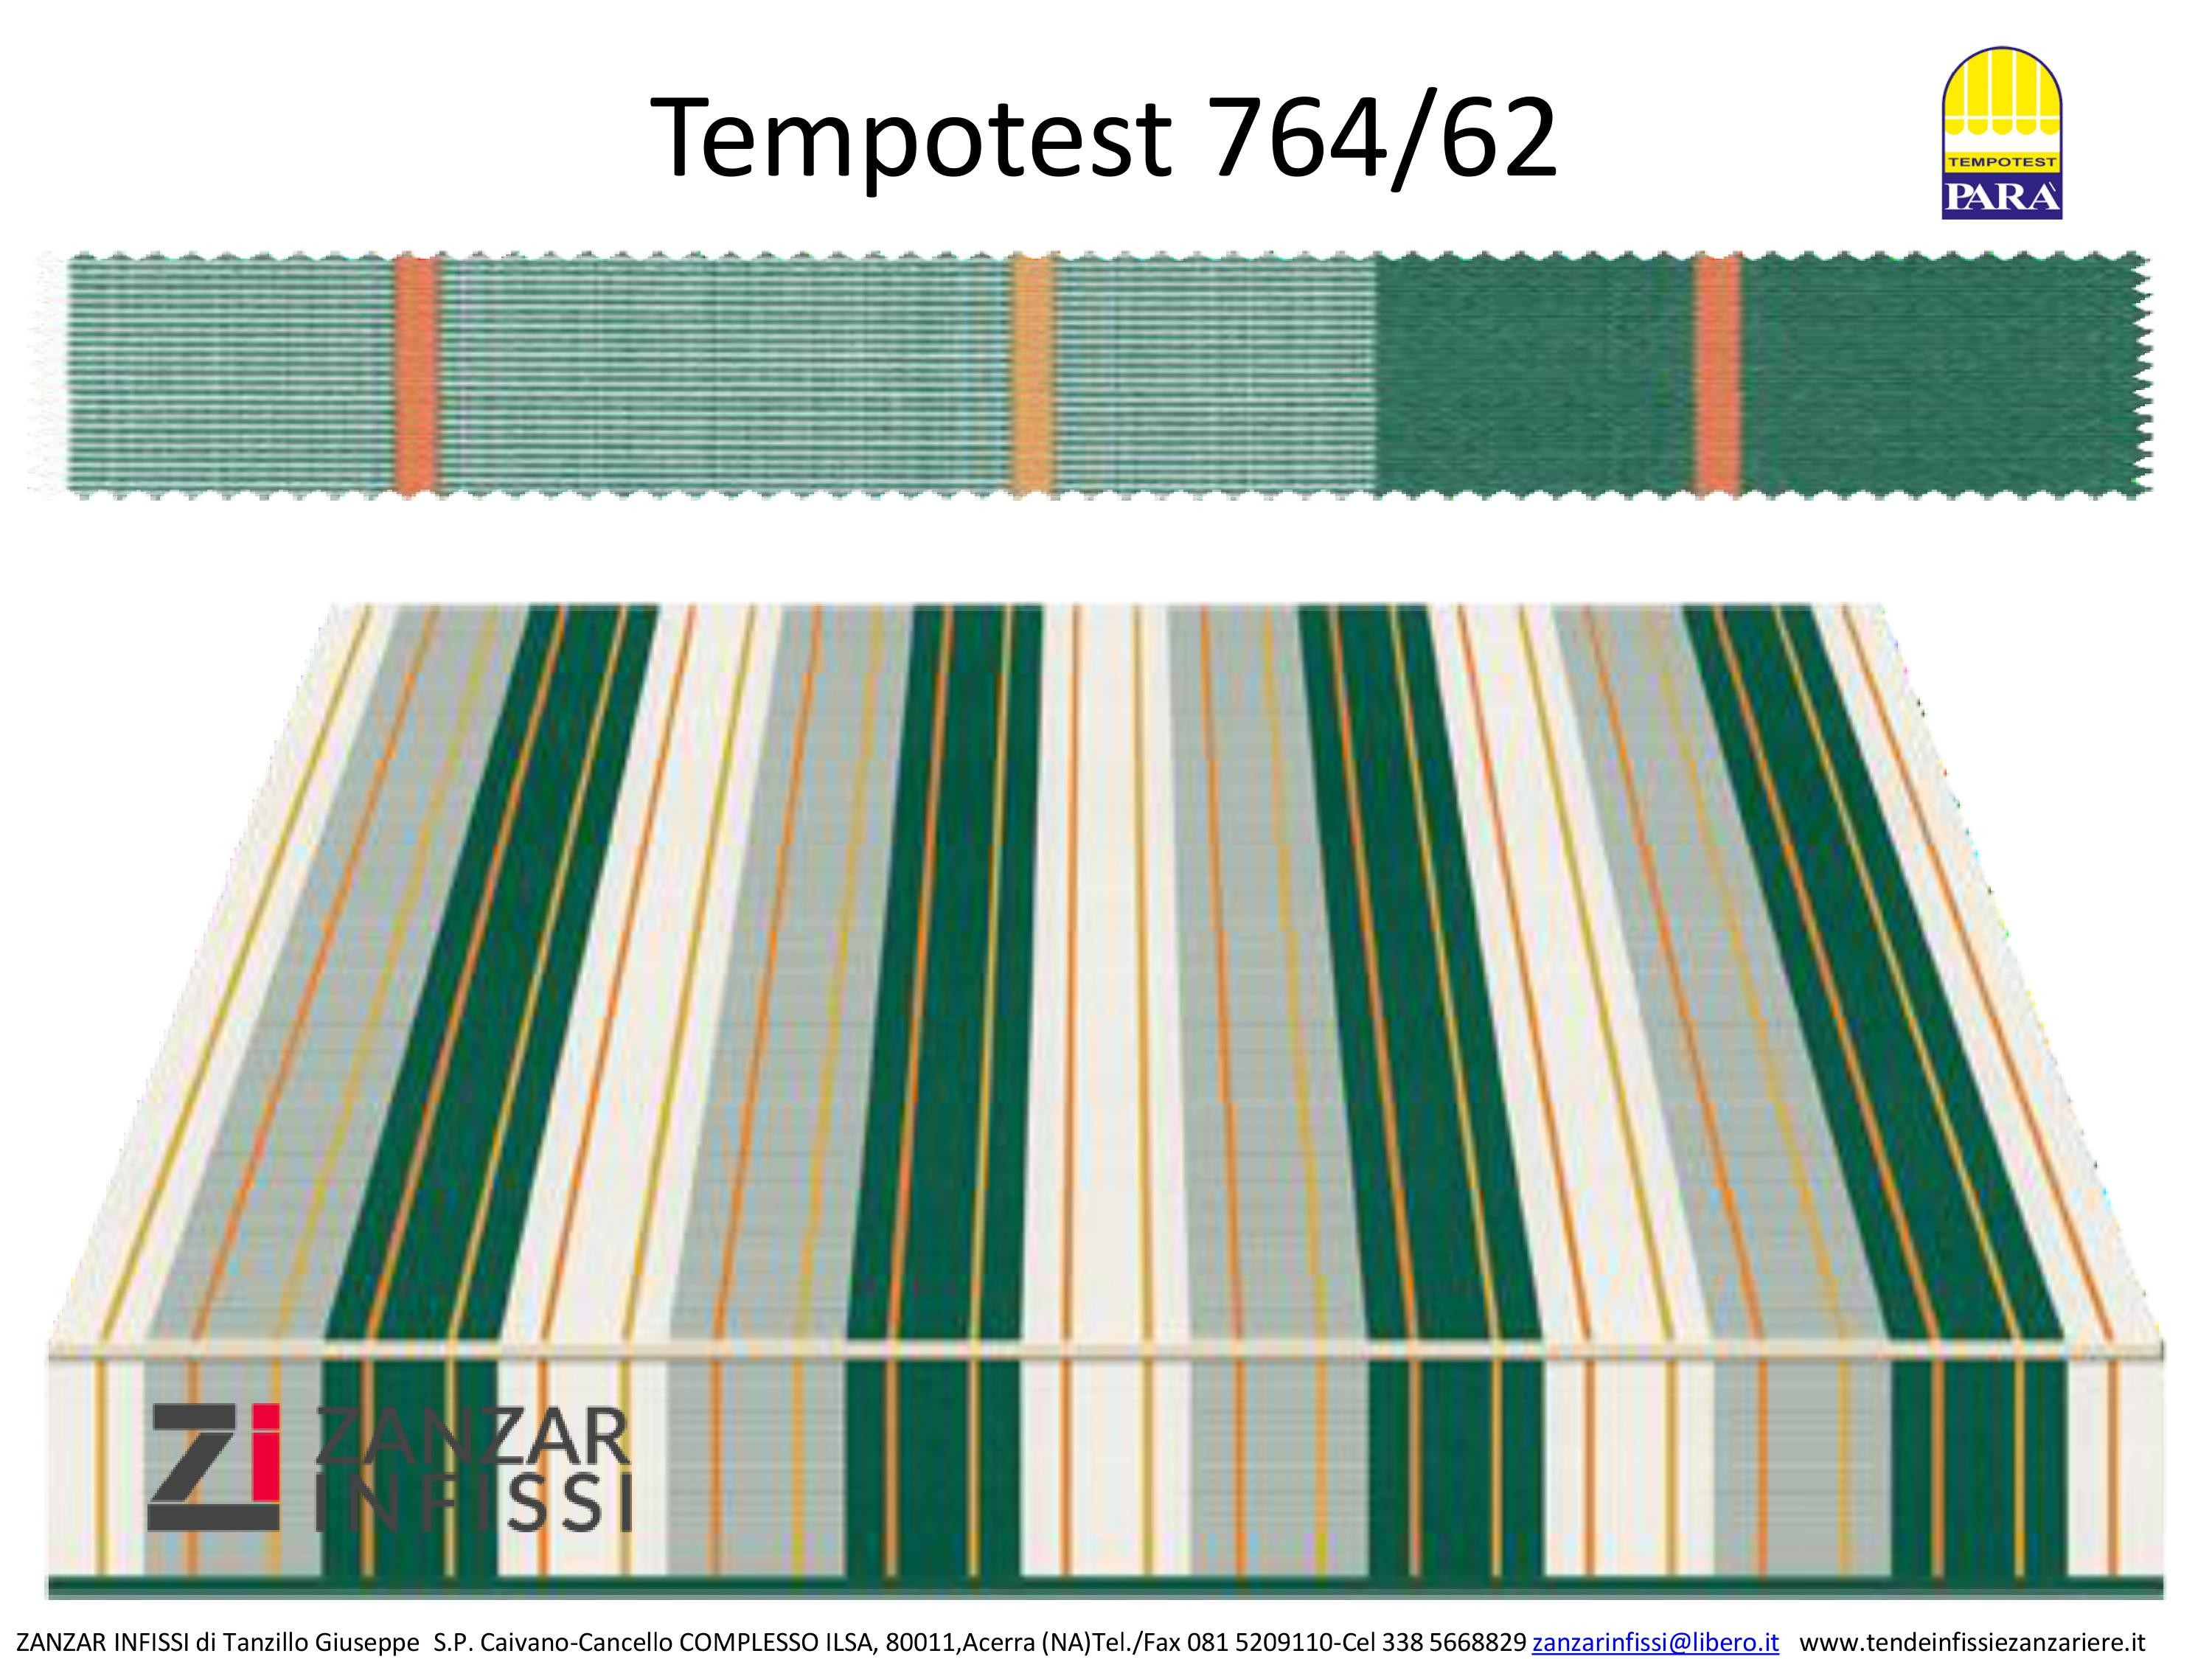 Tempotest 764/62